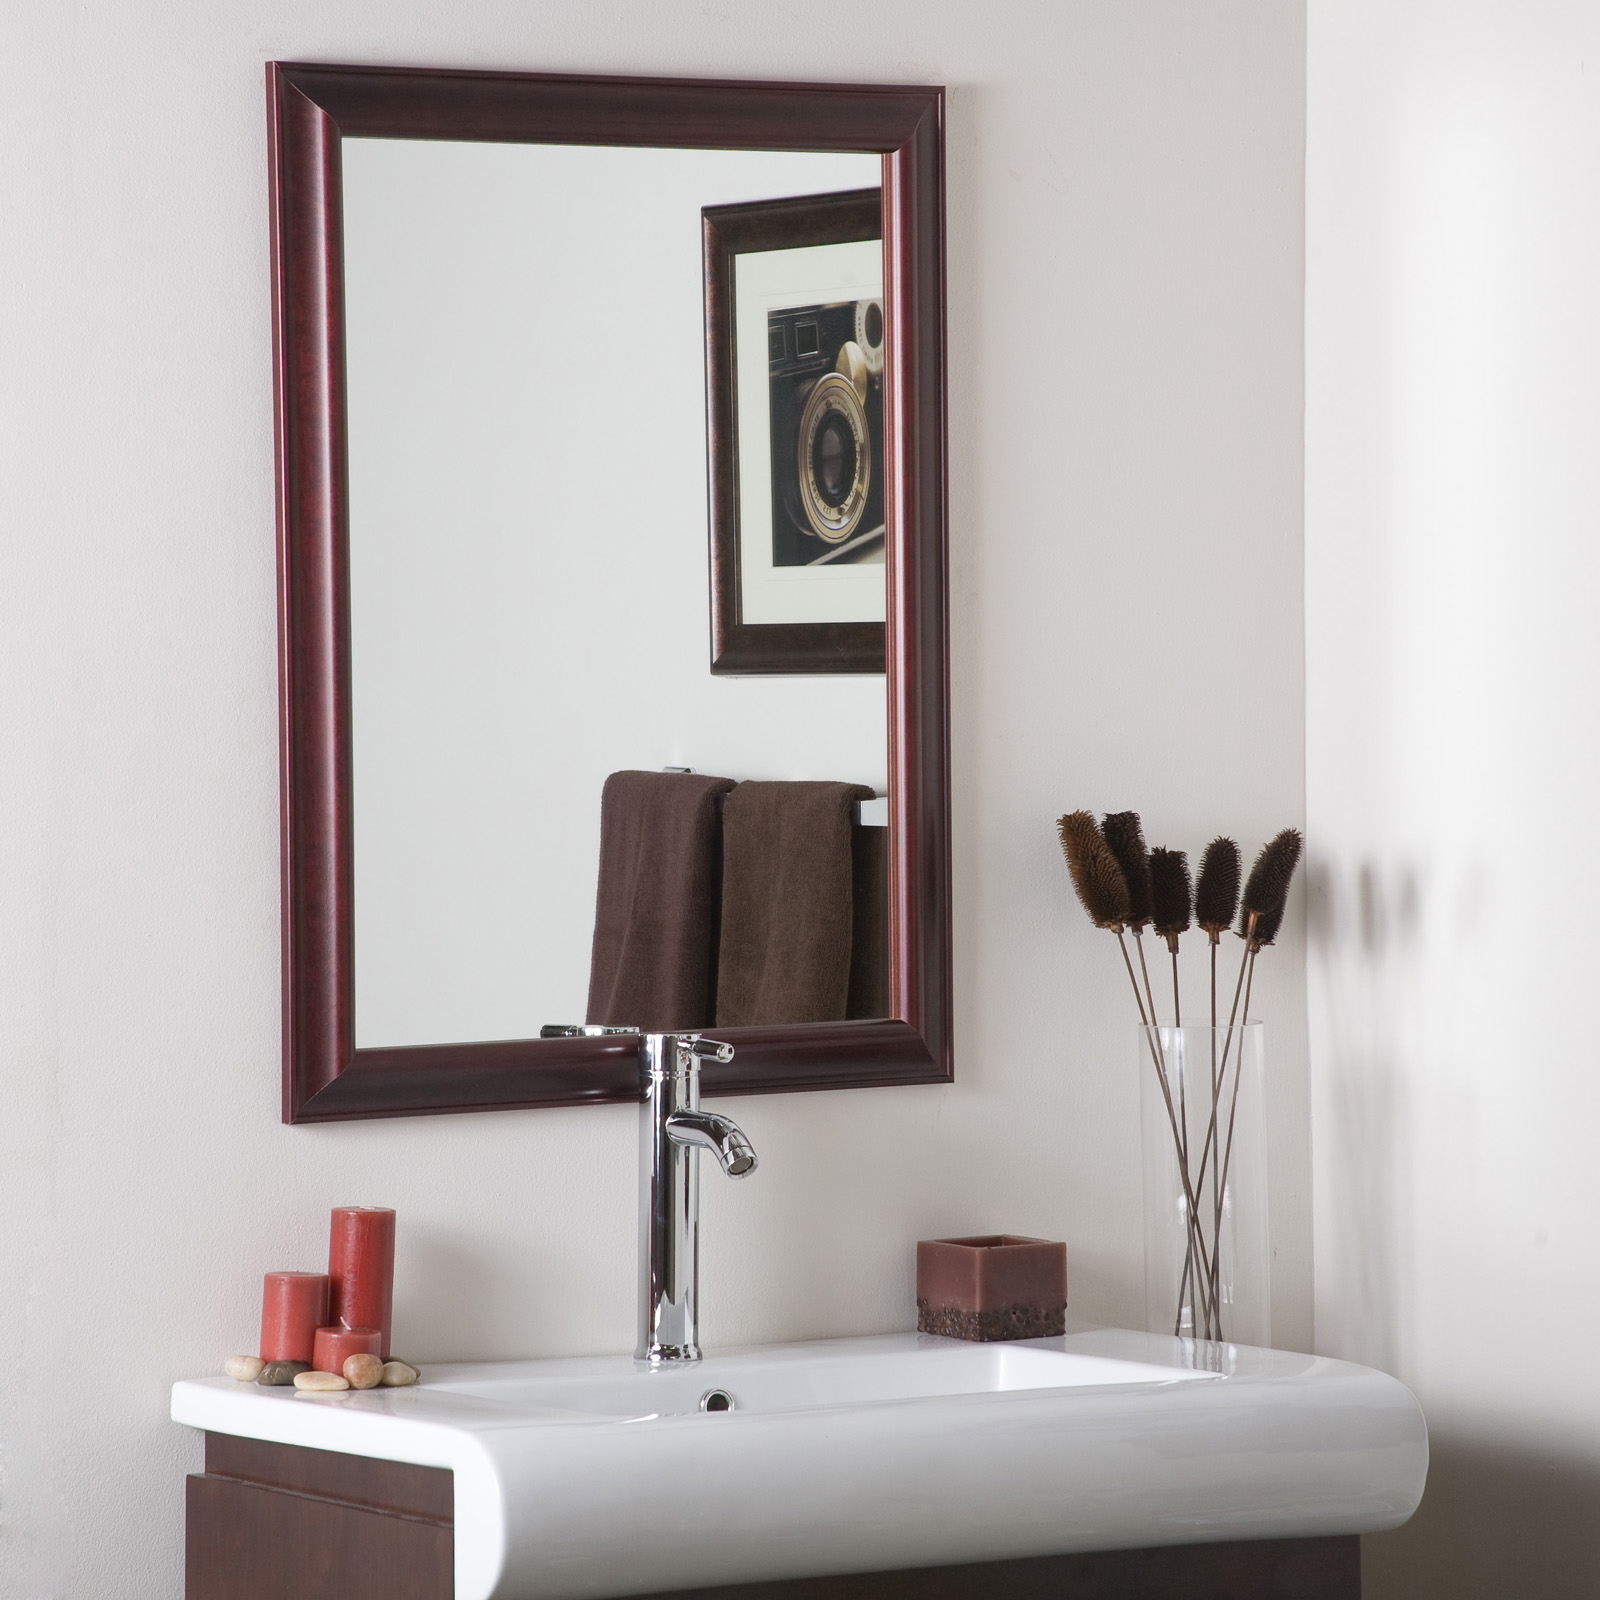 Beautiful Mahogany Framed Wall Mirror Price: $138.99